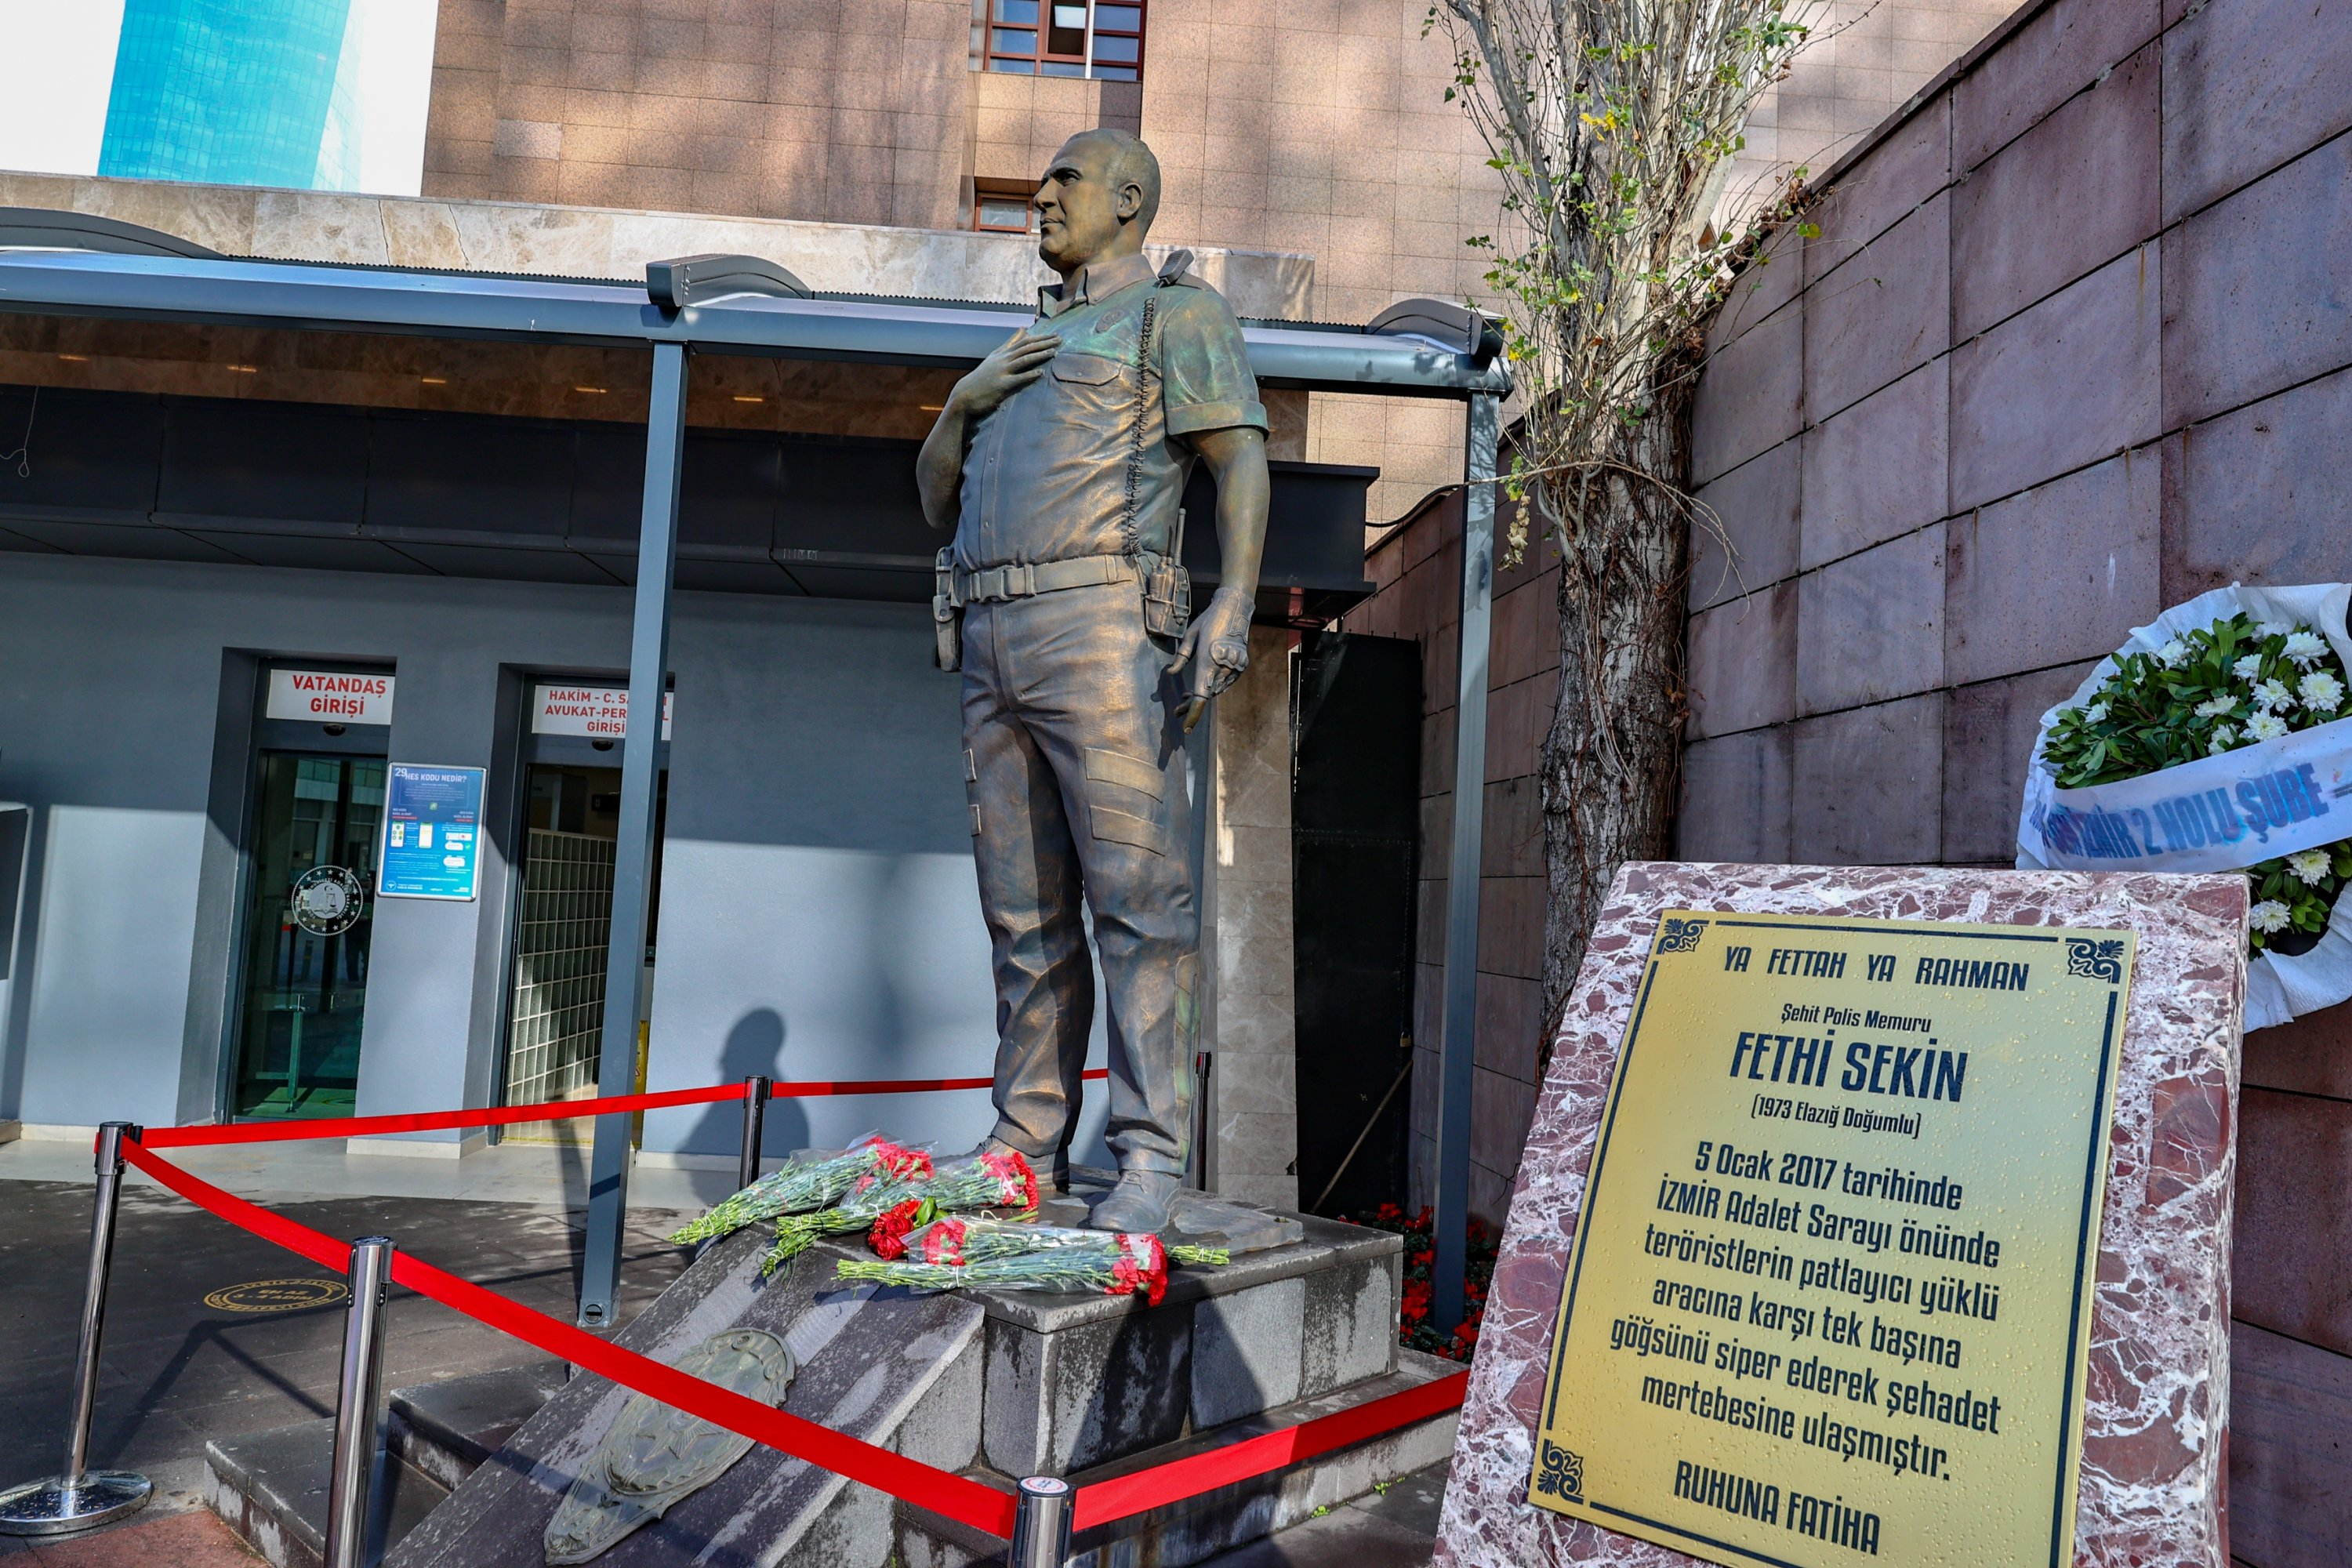 Flowers are put on the statue of Police Officer Fethi Sekin in memory of the fourth anniversary of his killing by PKK terrorists, in Izmir, Turkey, Jan. 5, 2021.